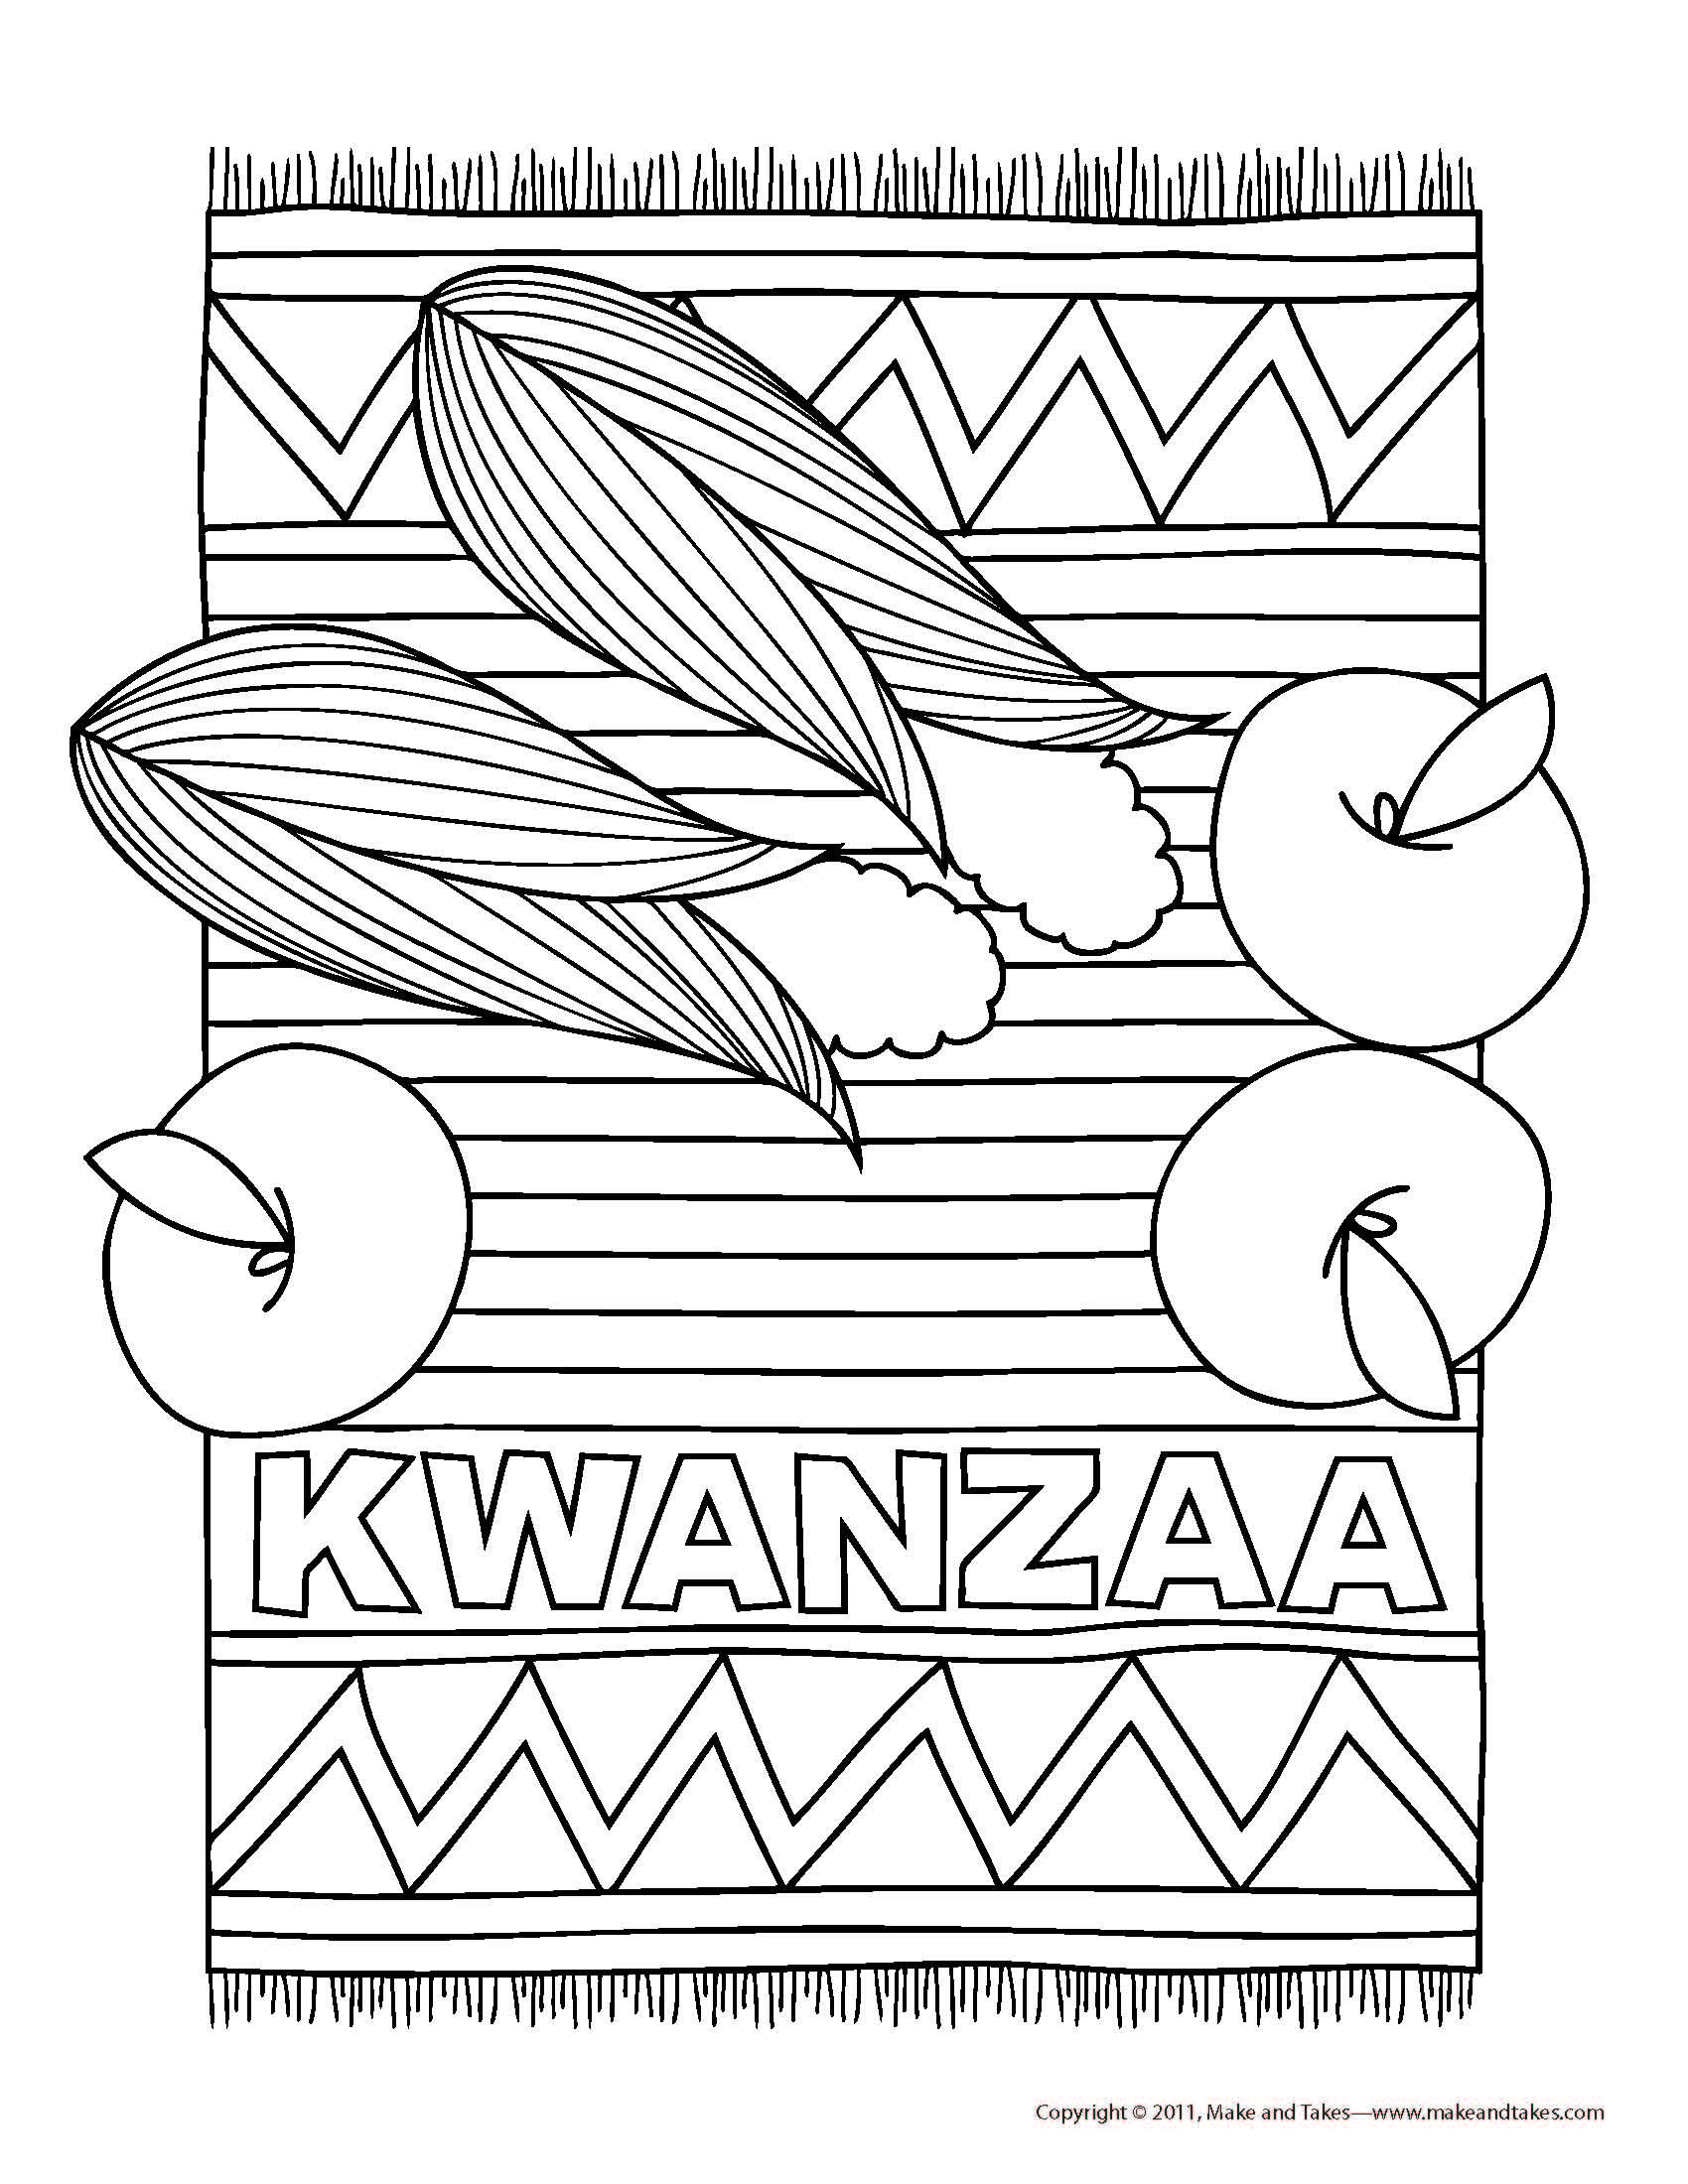 Kwanzaa Colouring Page Find More Information About Kwanzaa At Fun